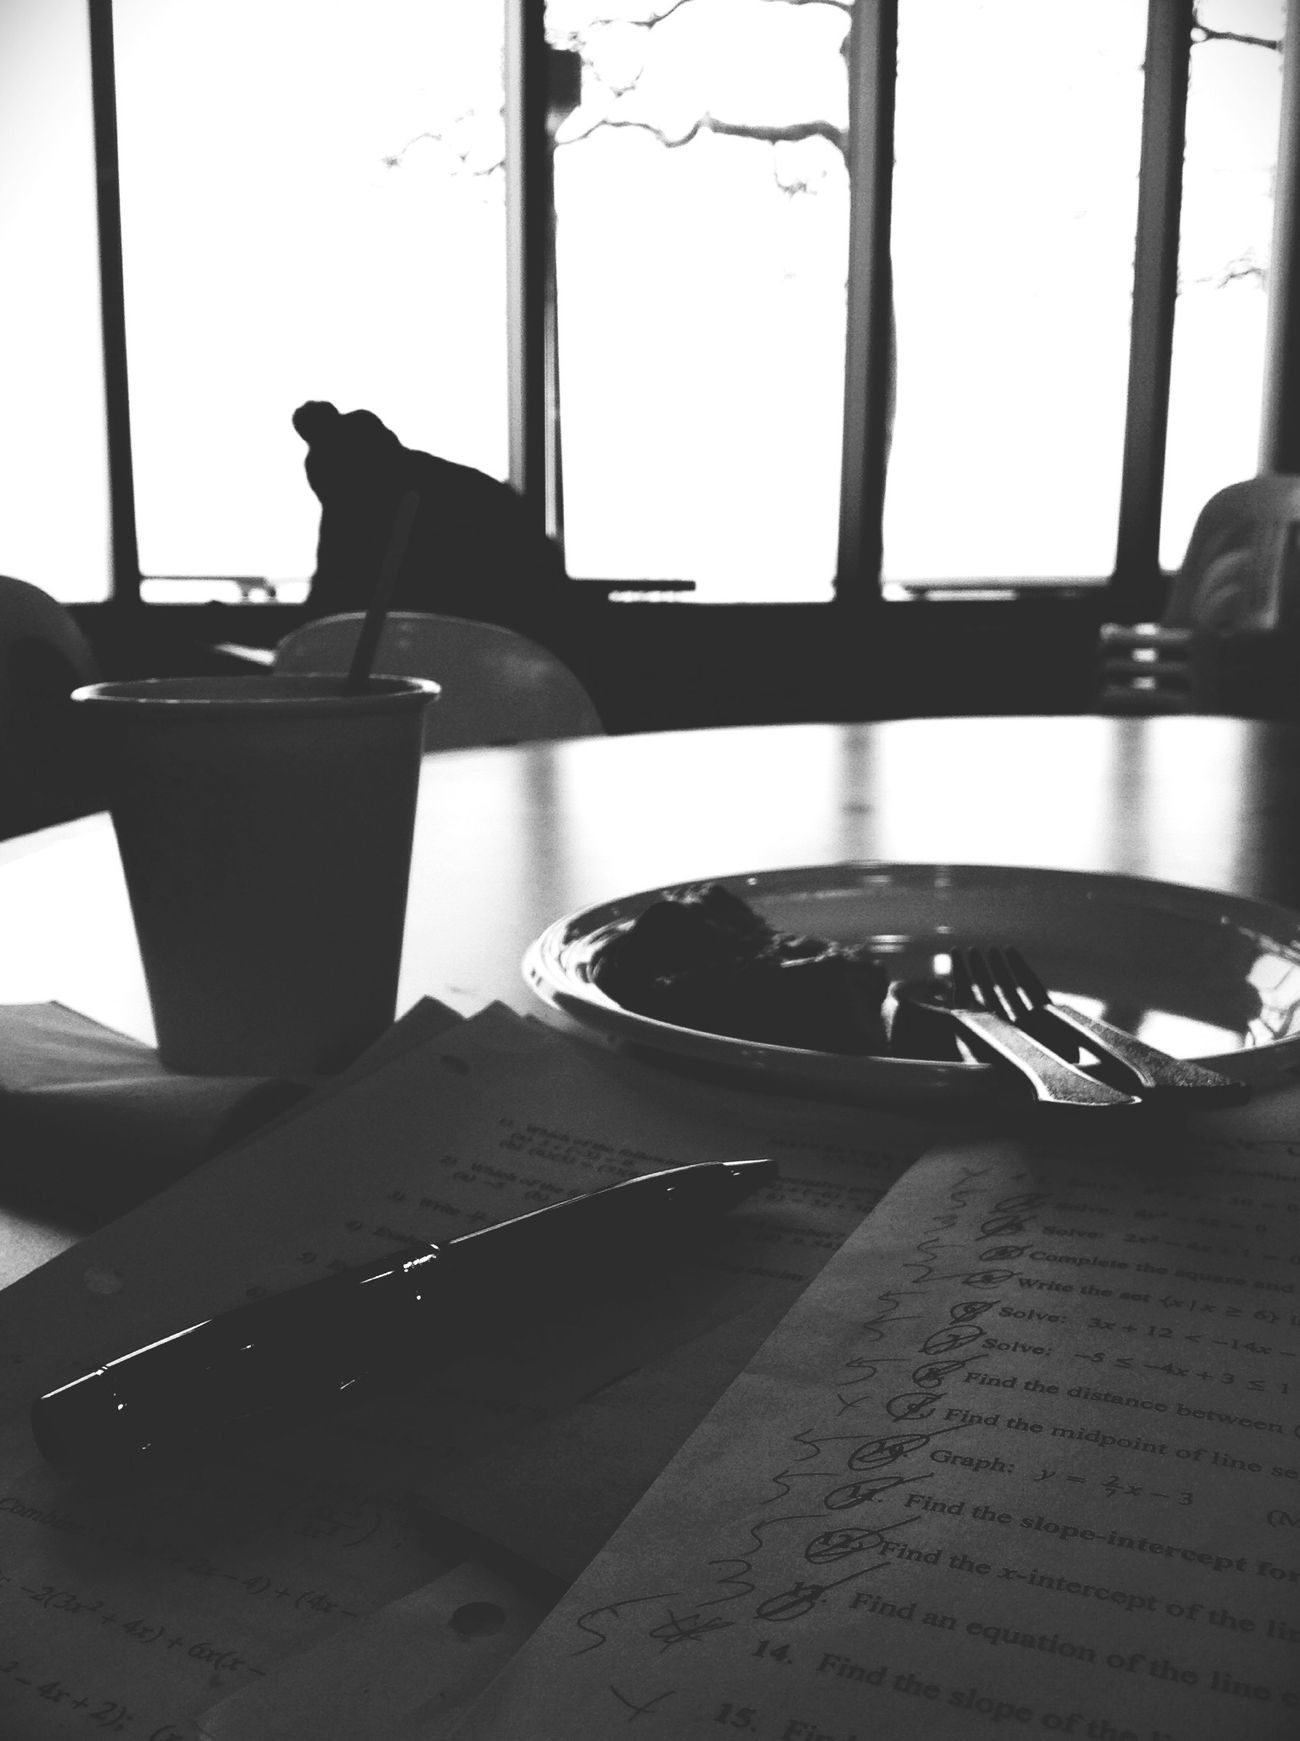 Studying Blackandwhite Breakfast Alone